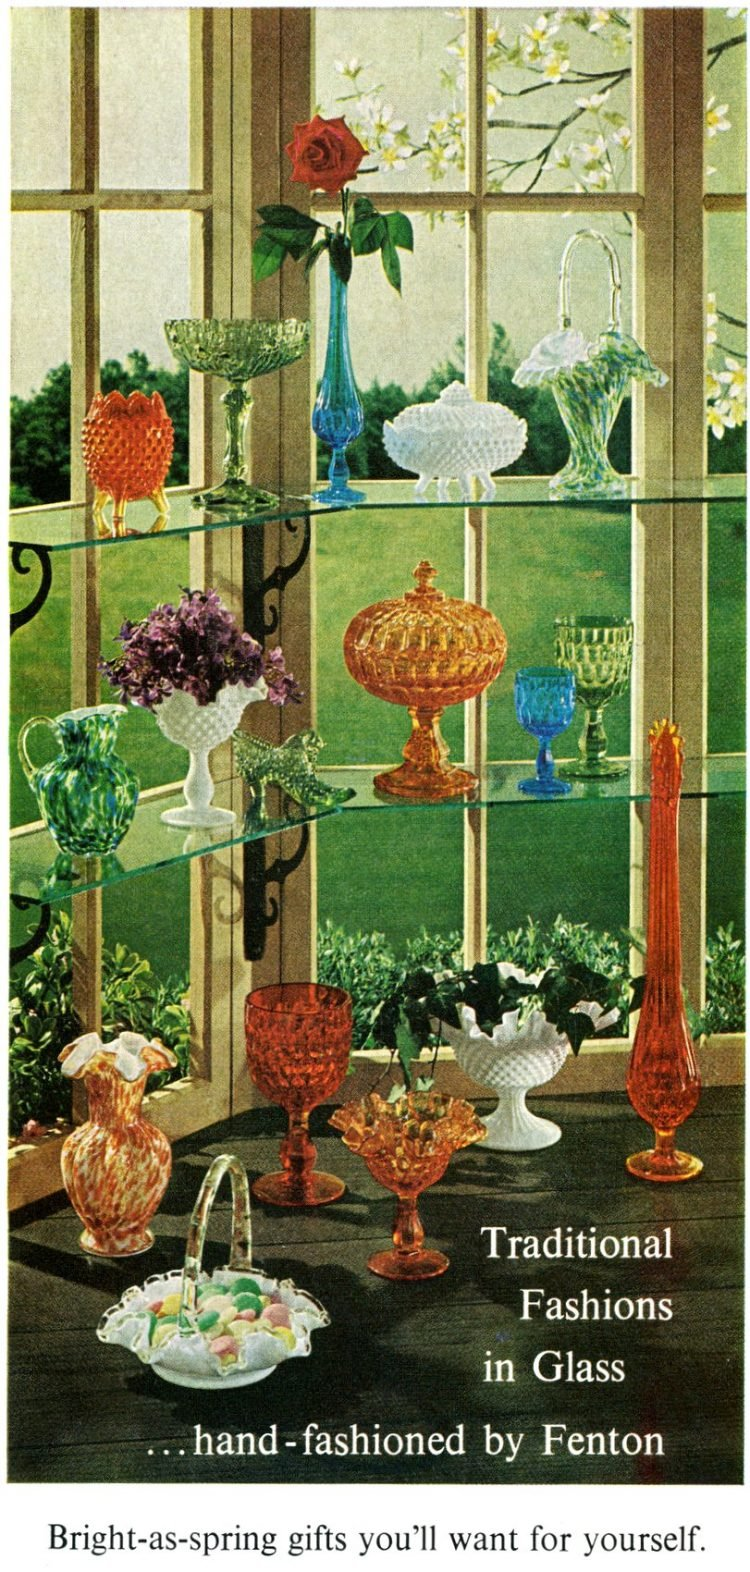 Hand-fashioned traditional glass styles by Fenton (1965)